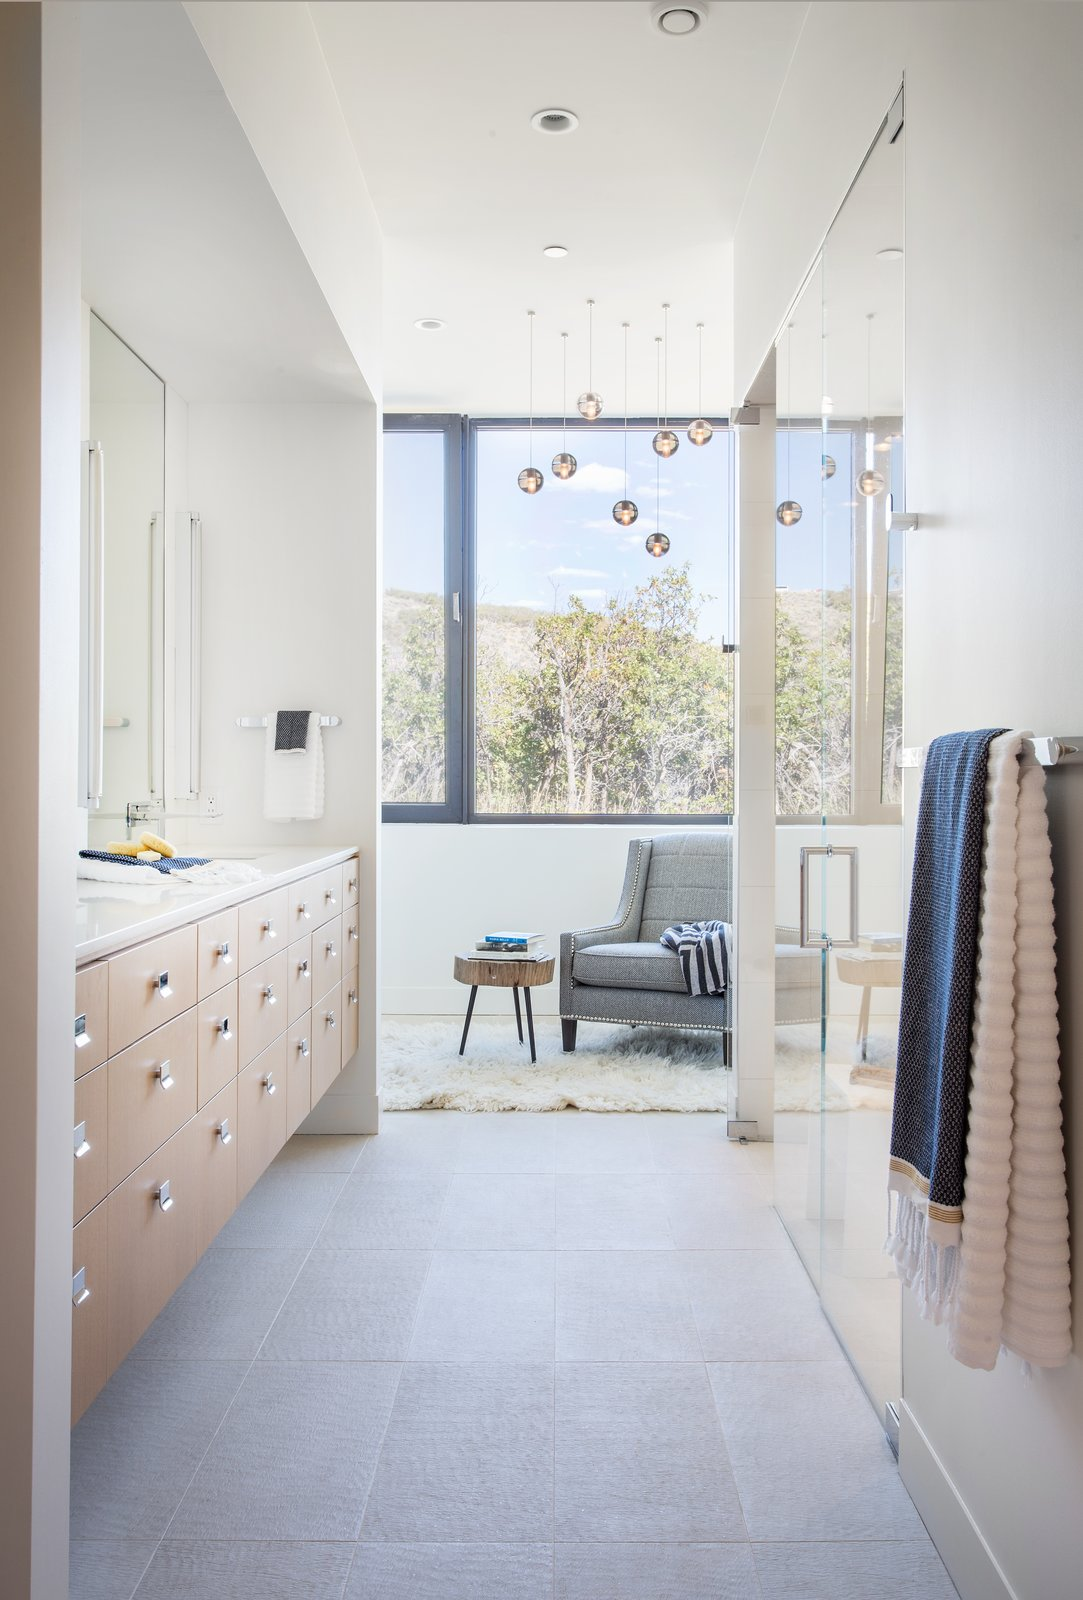 Tagged: Bath Room, Recessed Lighting, Undermount Sink, and Pendant Lighting.  Park City Modern Residence by Sparano + Mooney Architecture